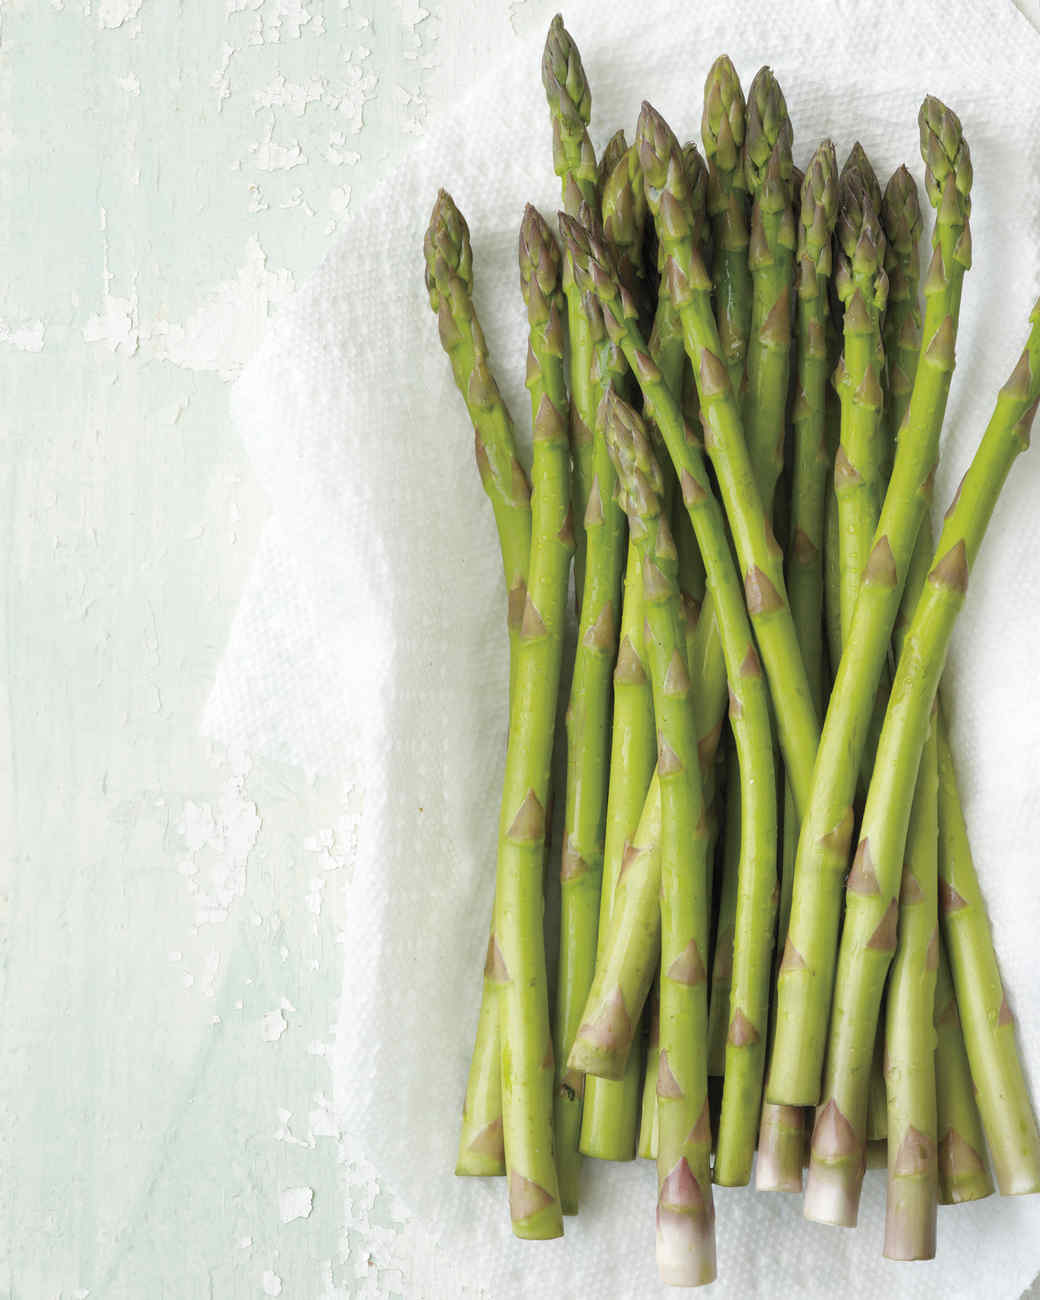 Asparagus Recipes: 25 Ways to Cook Our Favorite Spring Veg ...